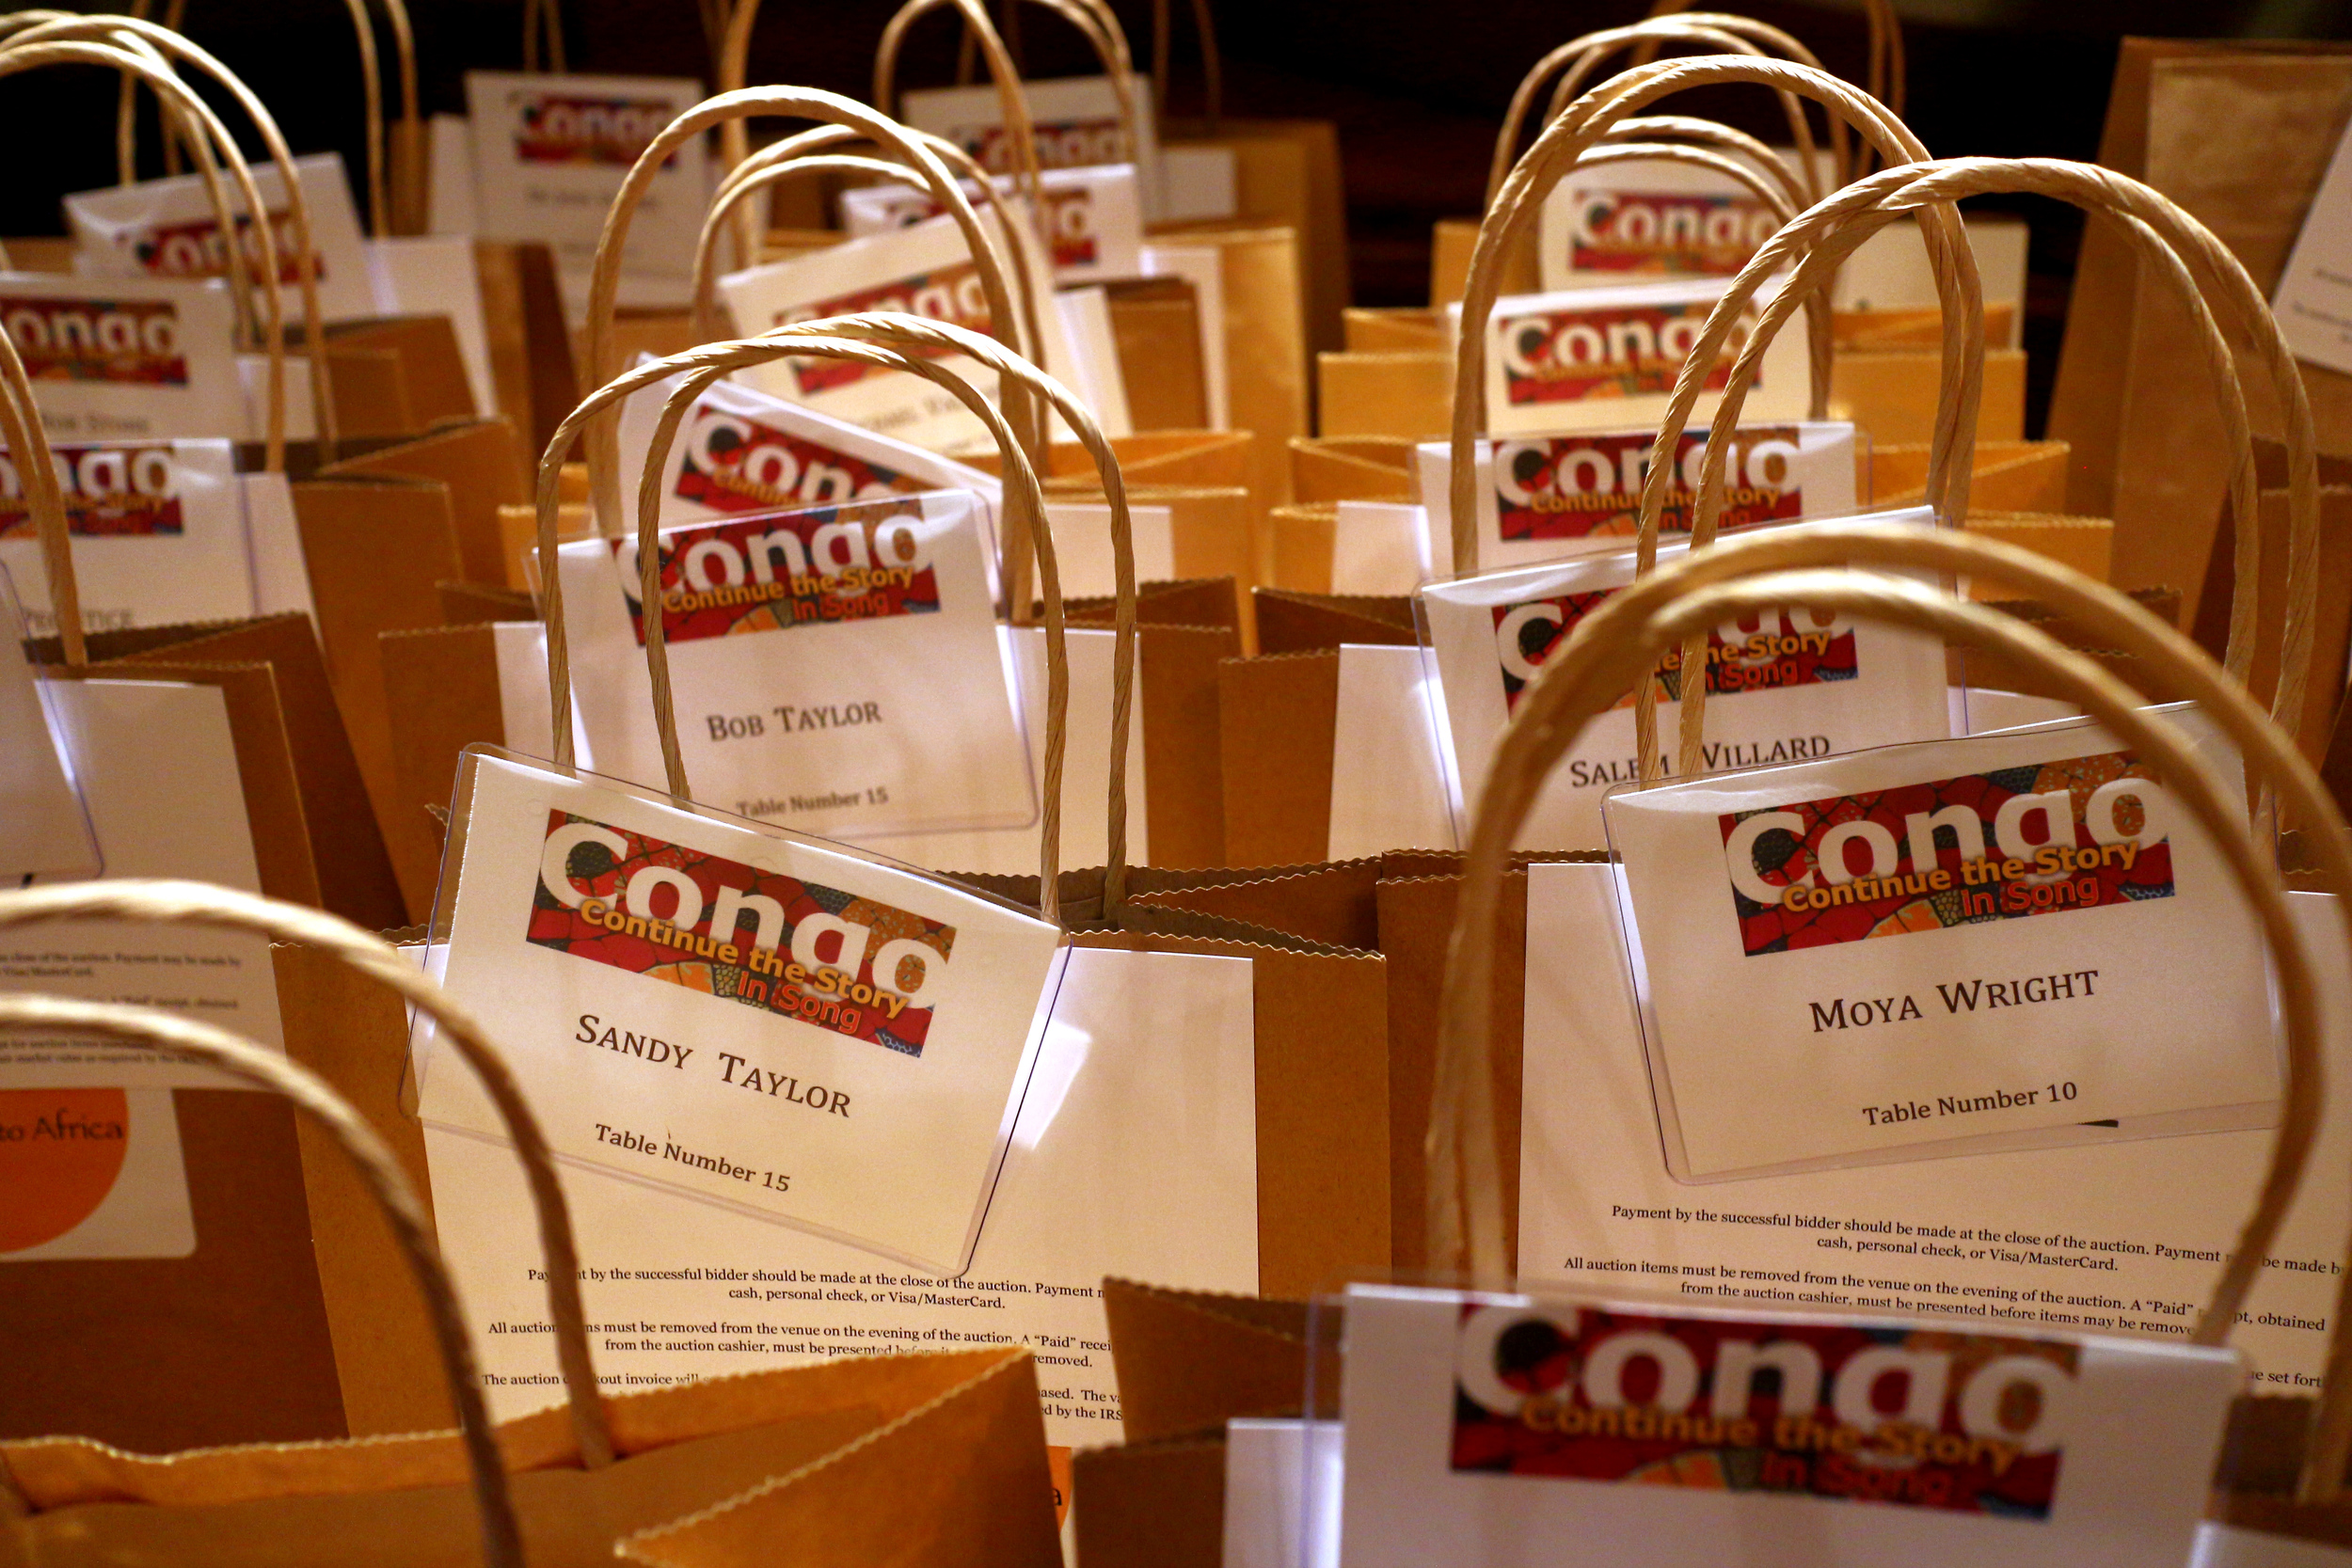 Guest bags were ready to go as the evening began